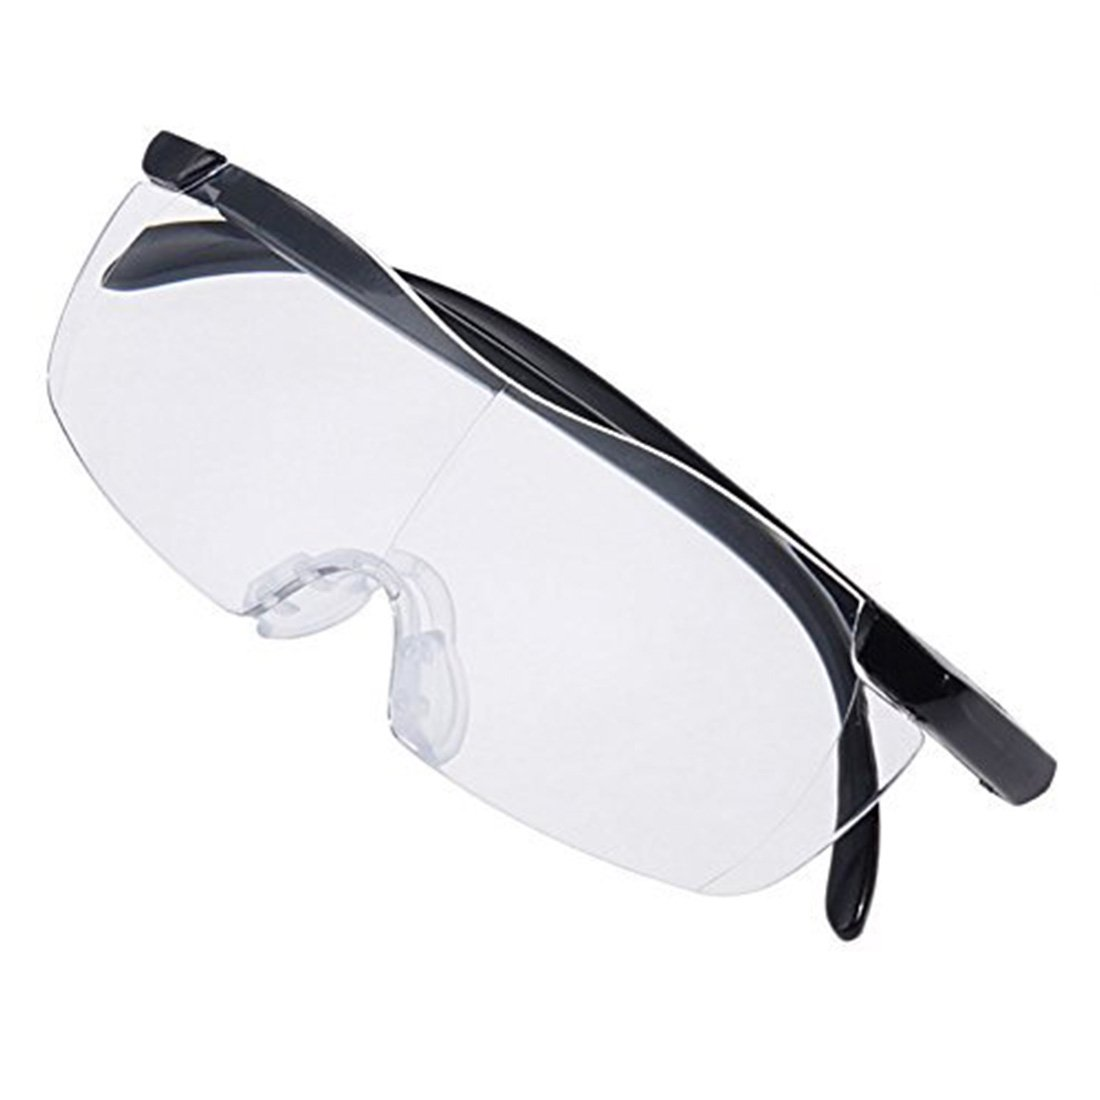 69ff8cfdb7 2Pcs Plastic Glasses 1.6X Magnifying Presbyopic Eyewear Makes Everything  Bigger and Clearer